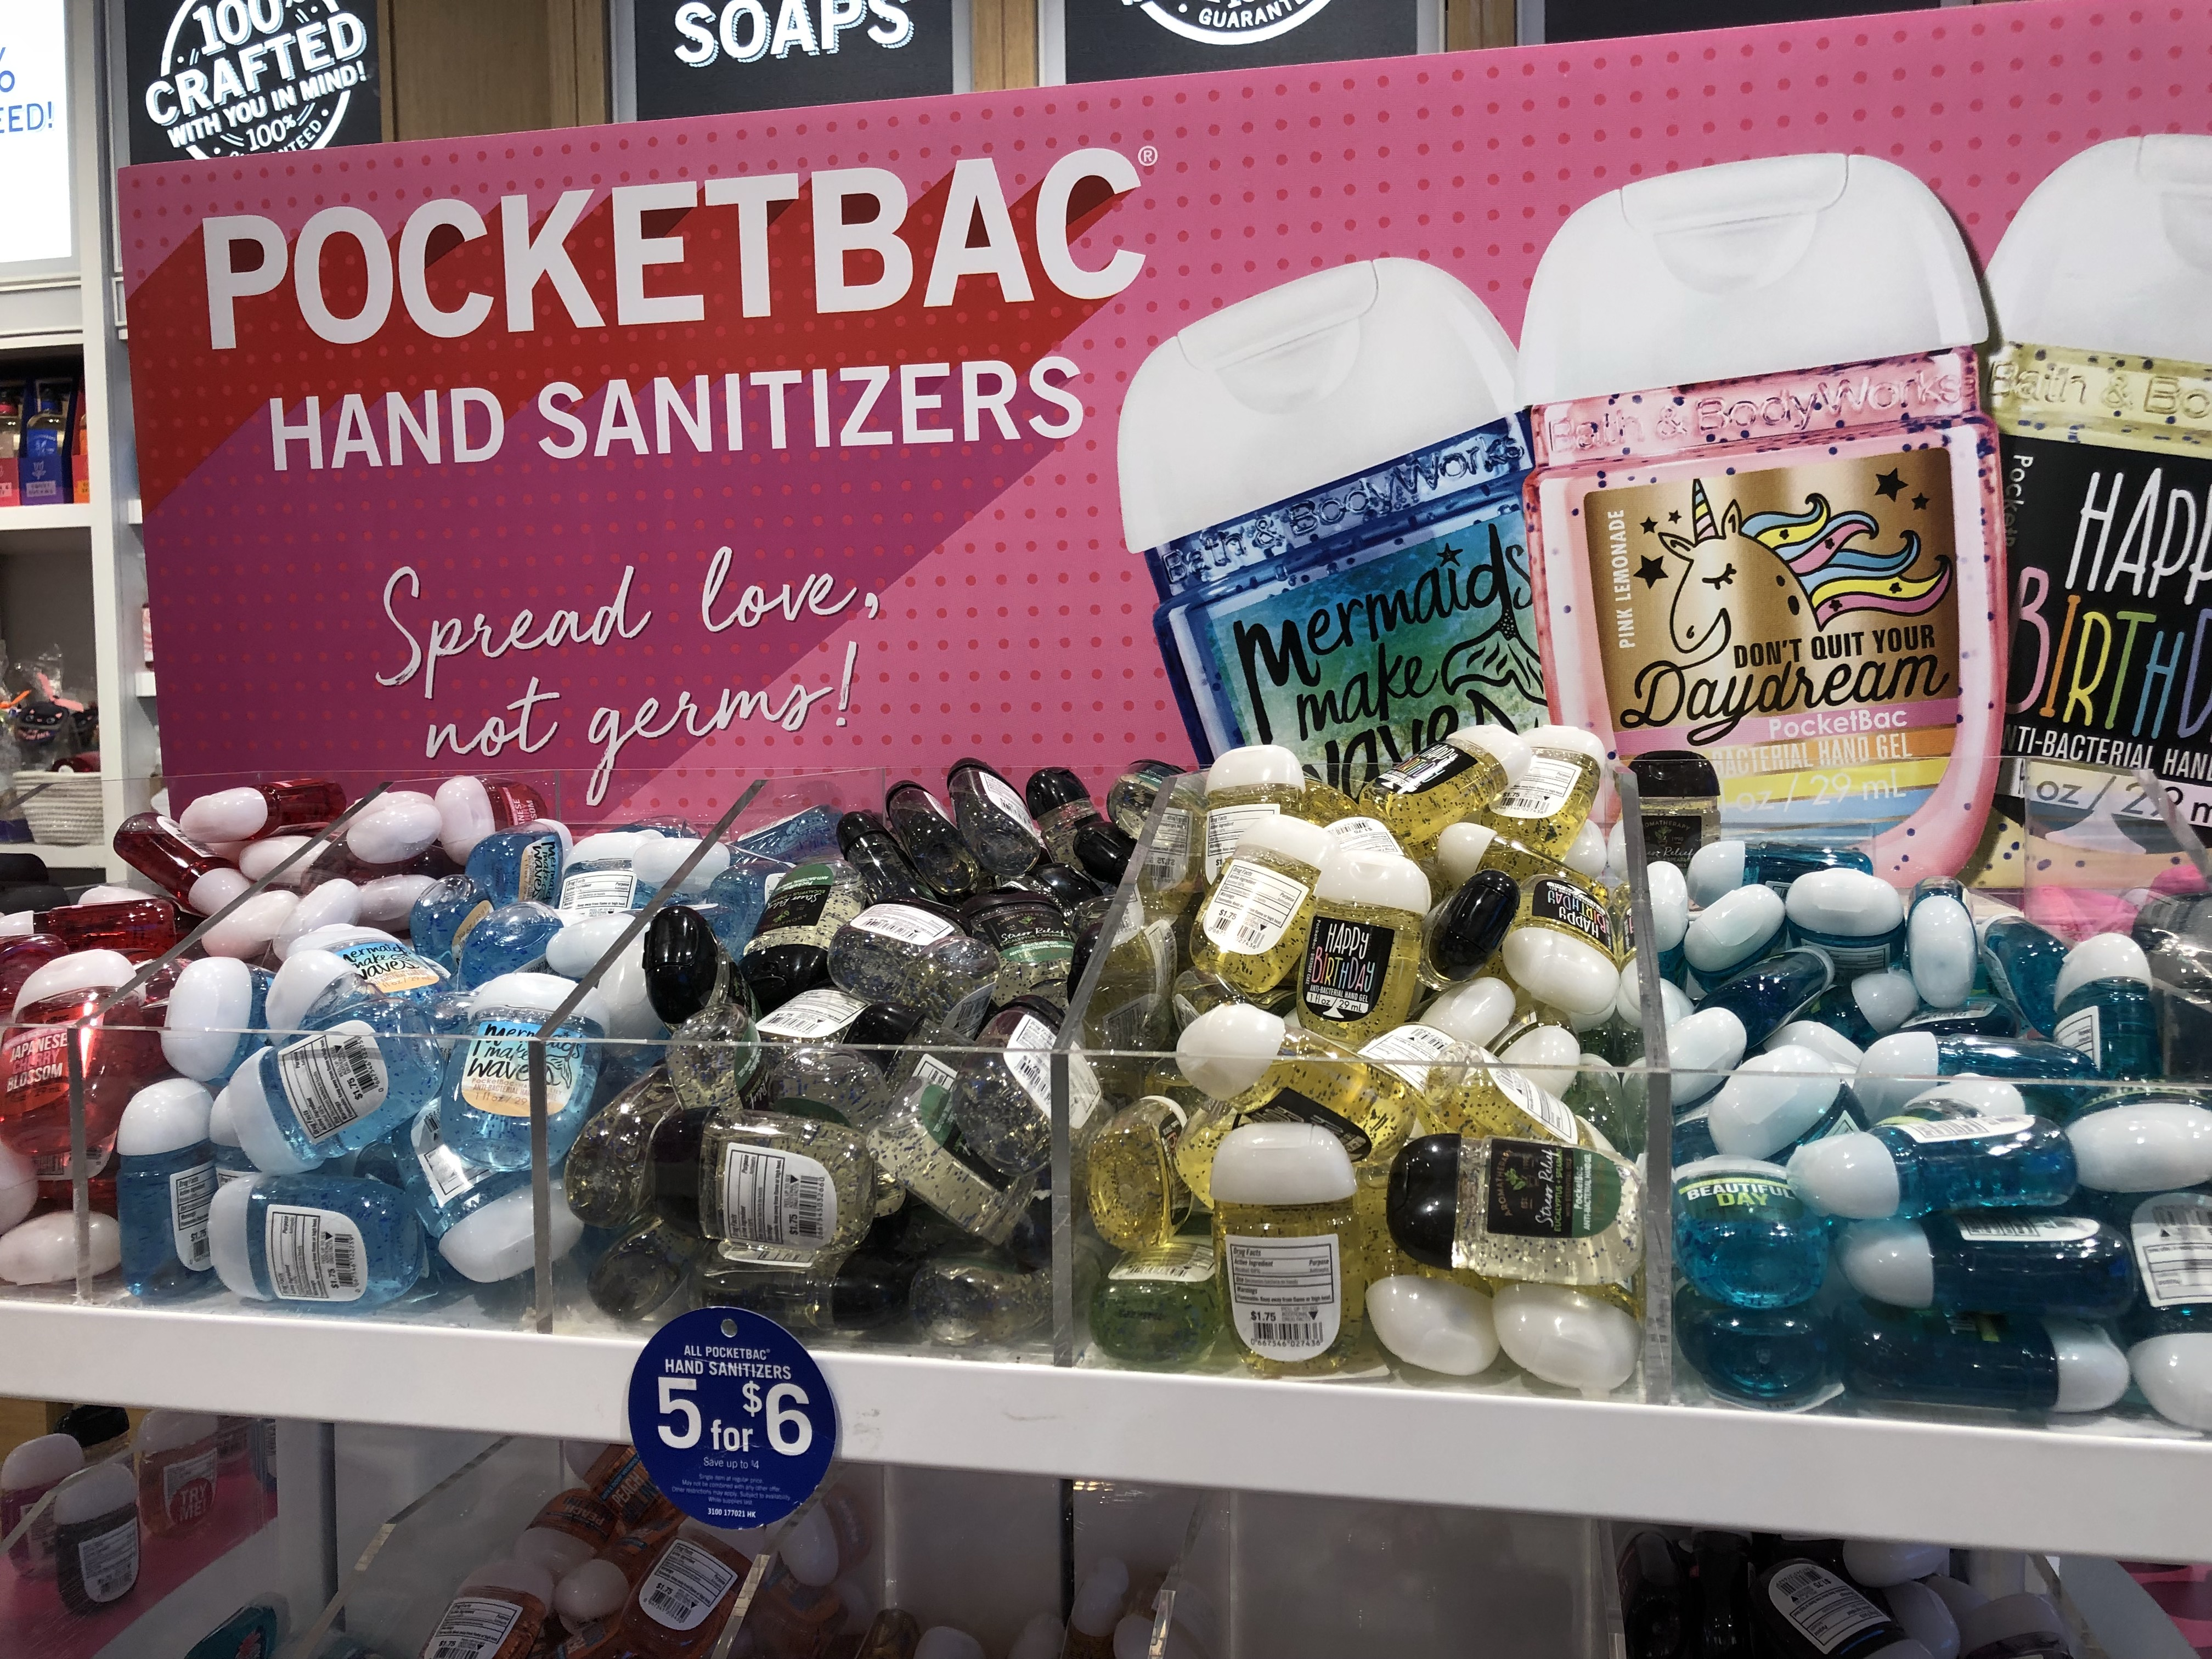 16 secrets for saving big at bath & body works – hand sanitizers display